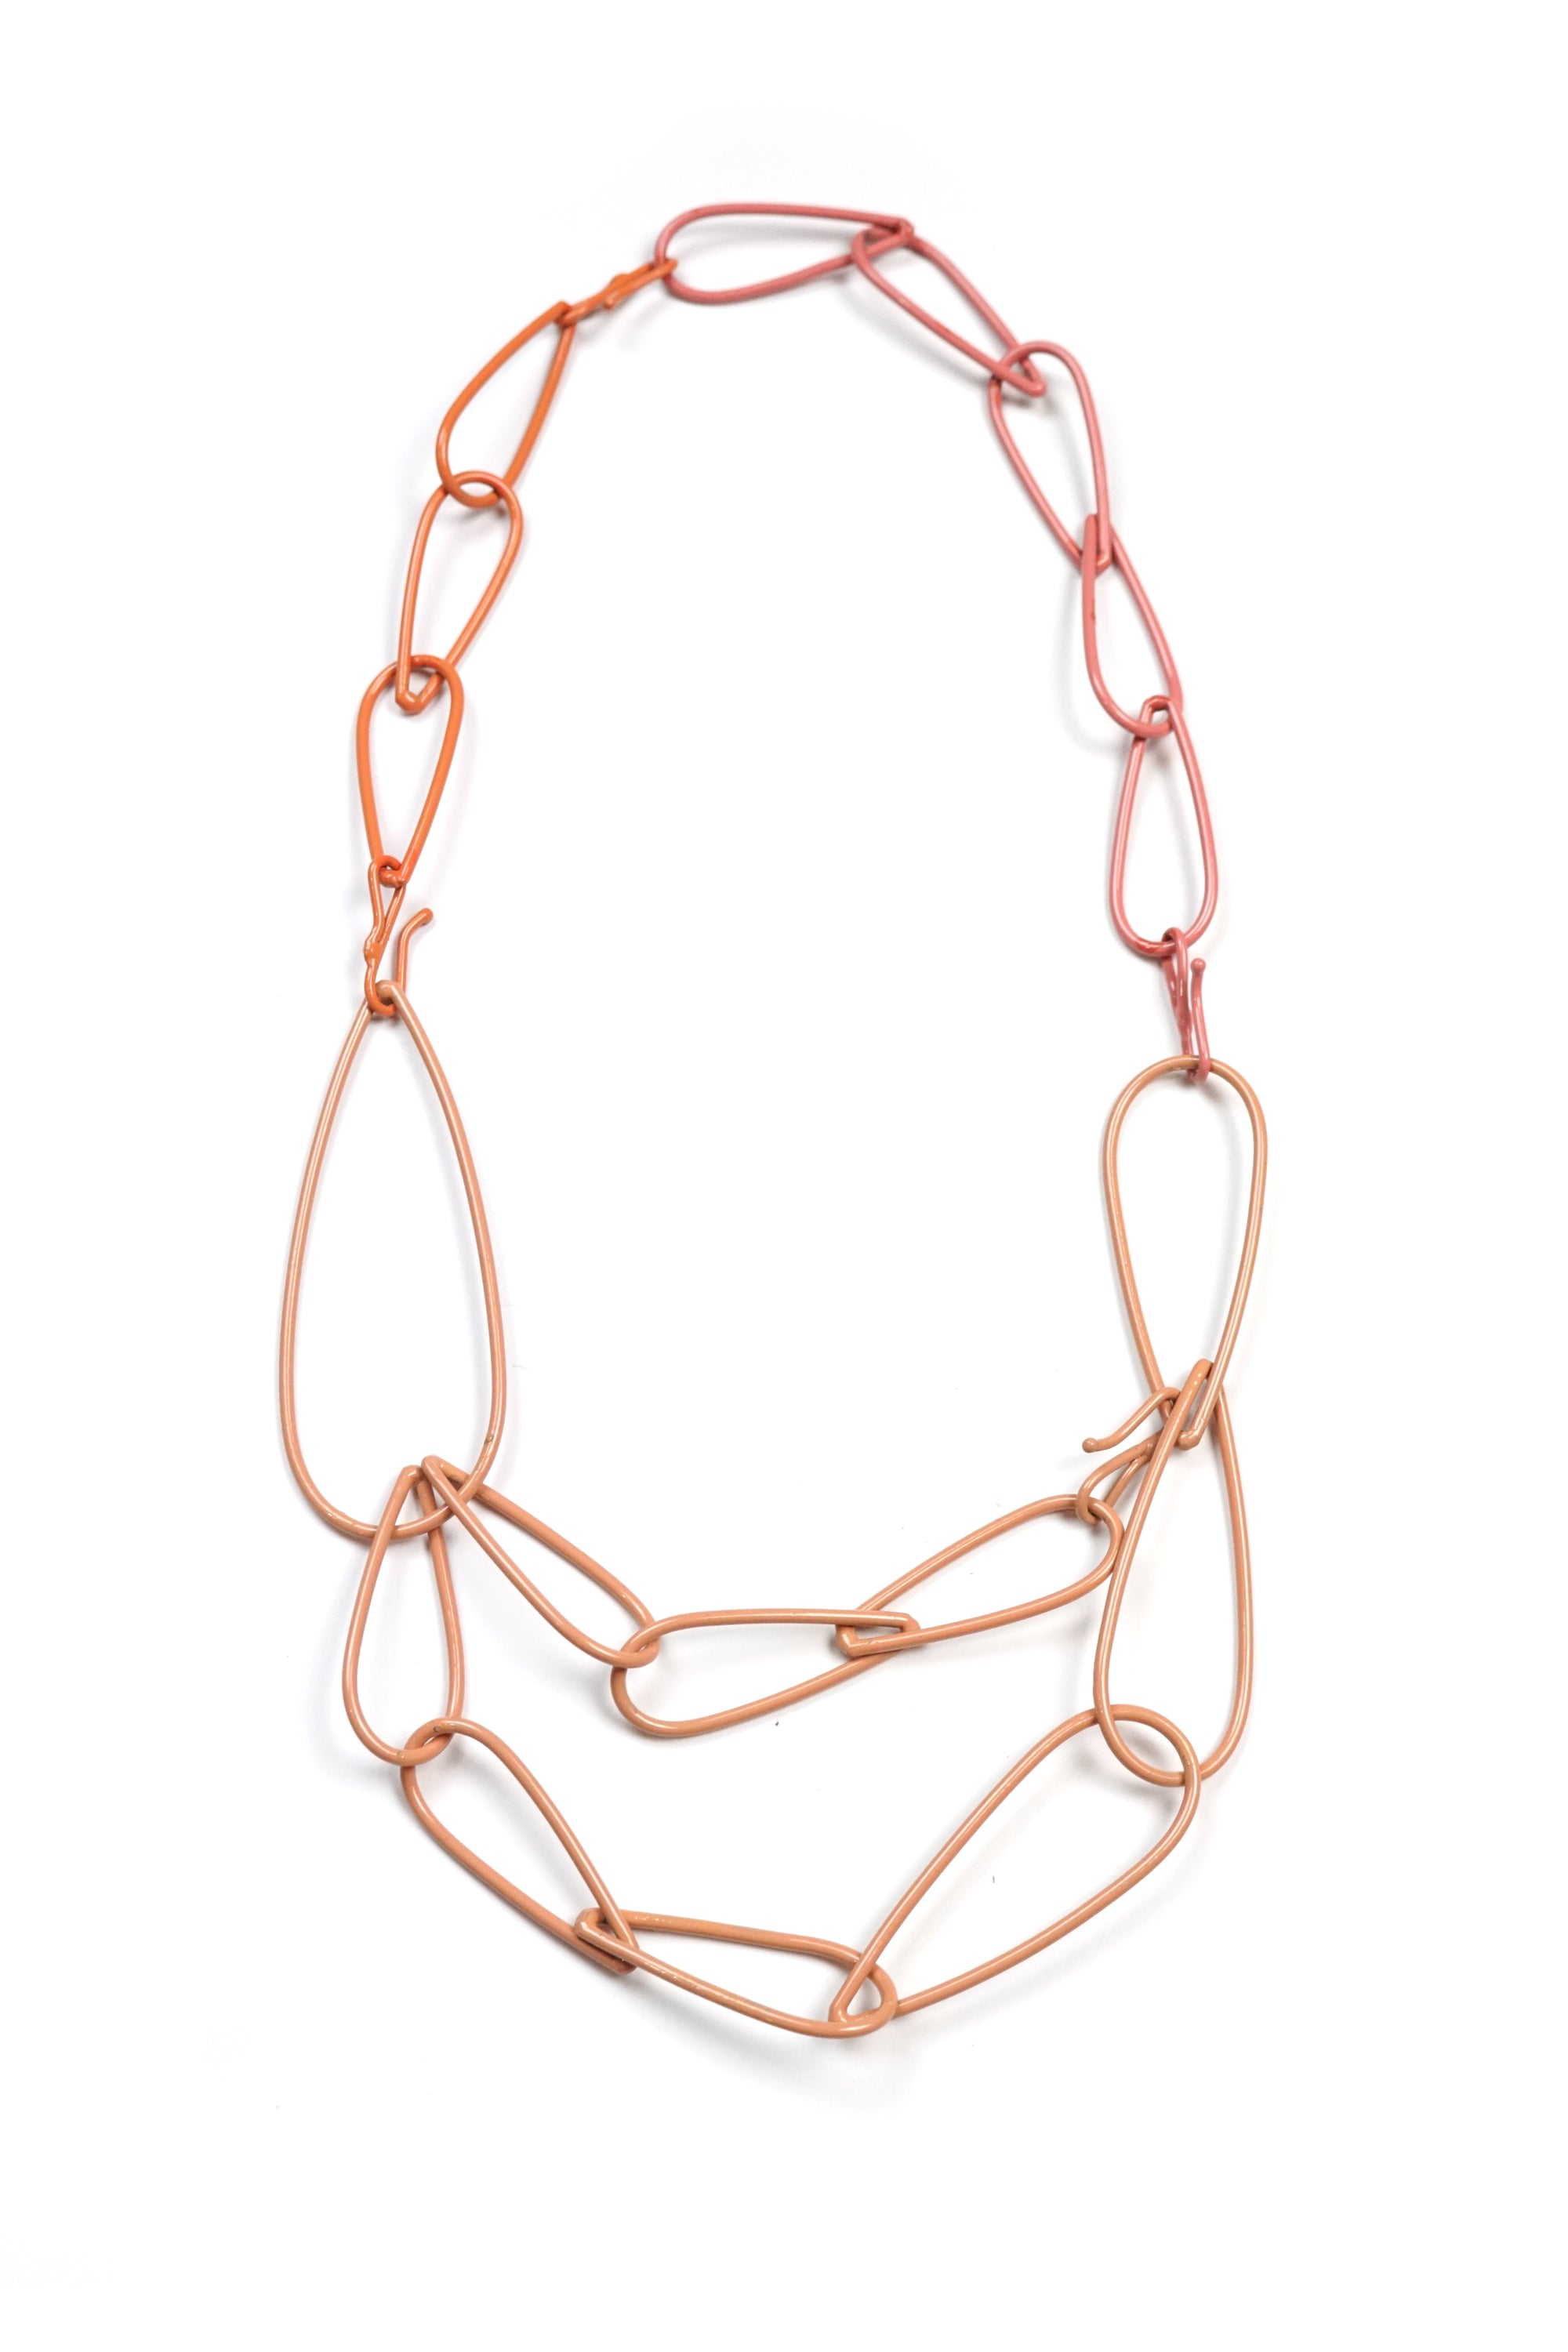 Modular Necklace in Dusty Rose, Desert Coral, and Light Raspberry